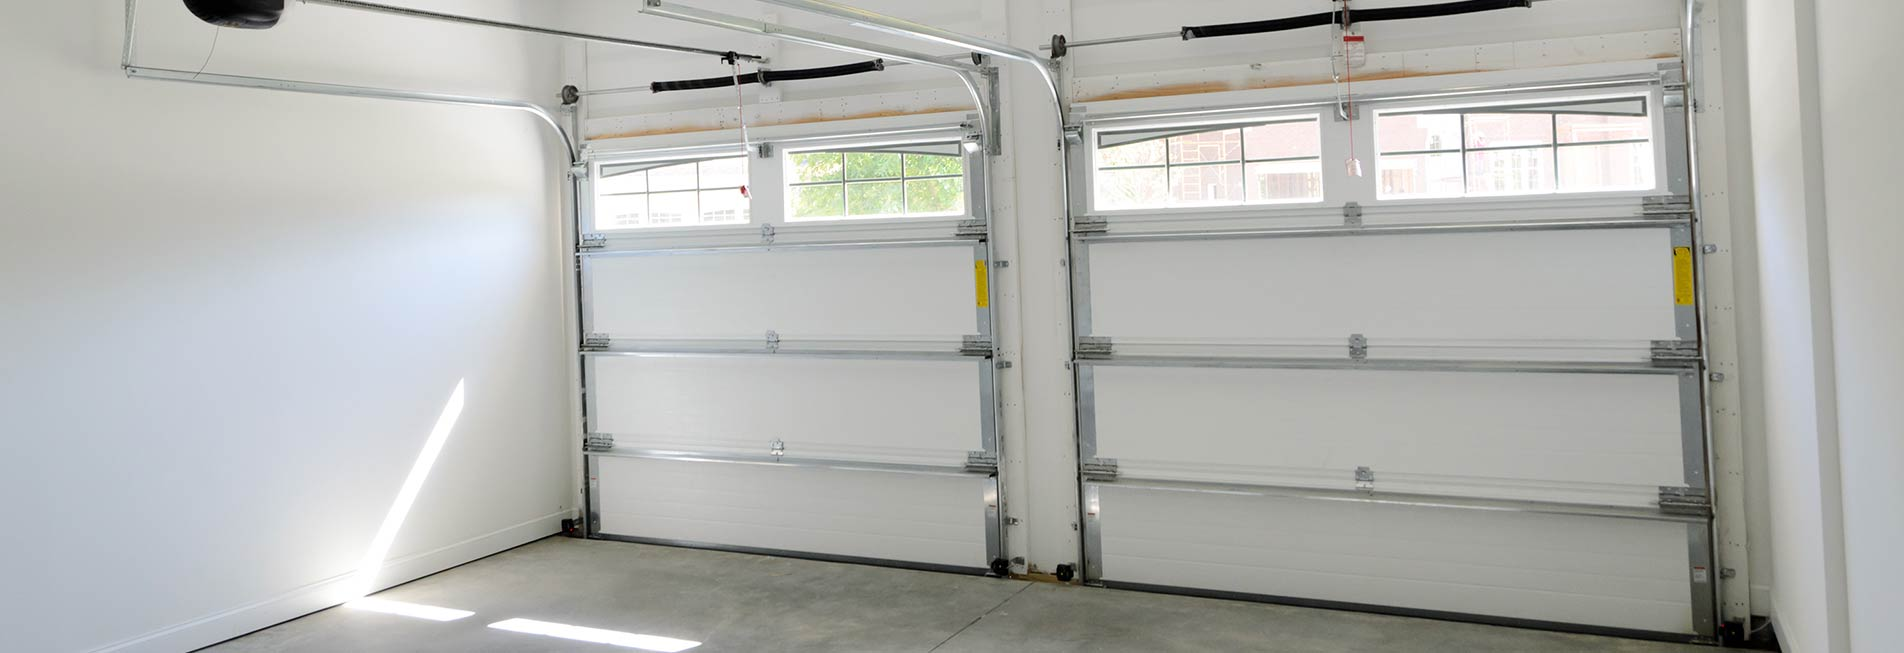 Garage Door Service Repair Carefree, AZ 866-807-3970